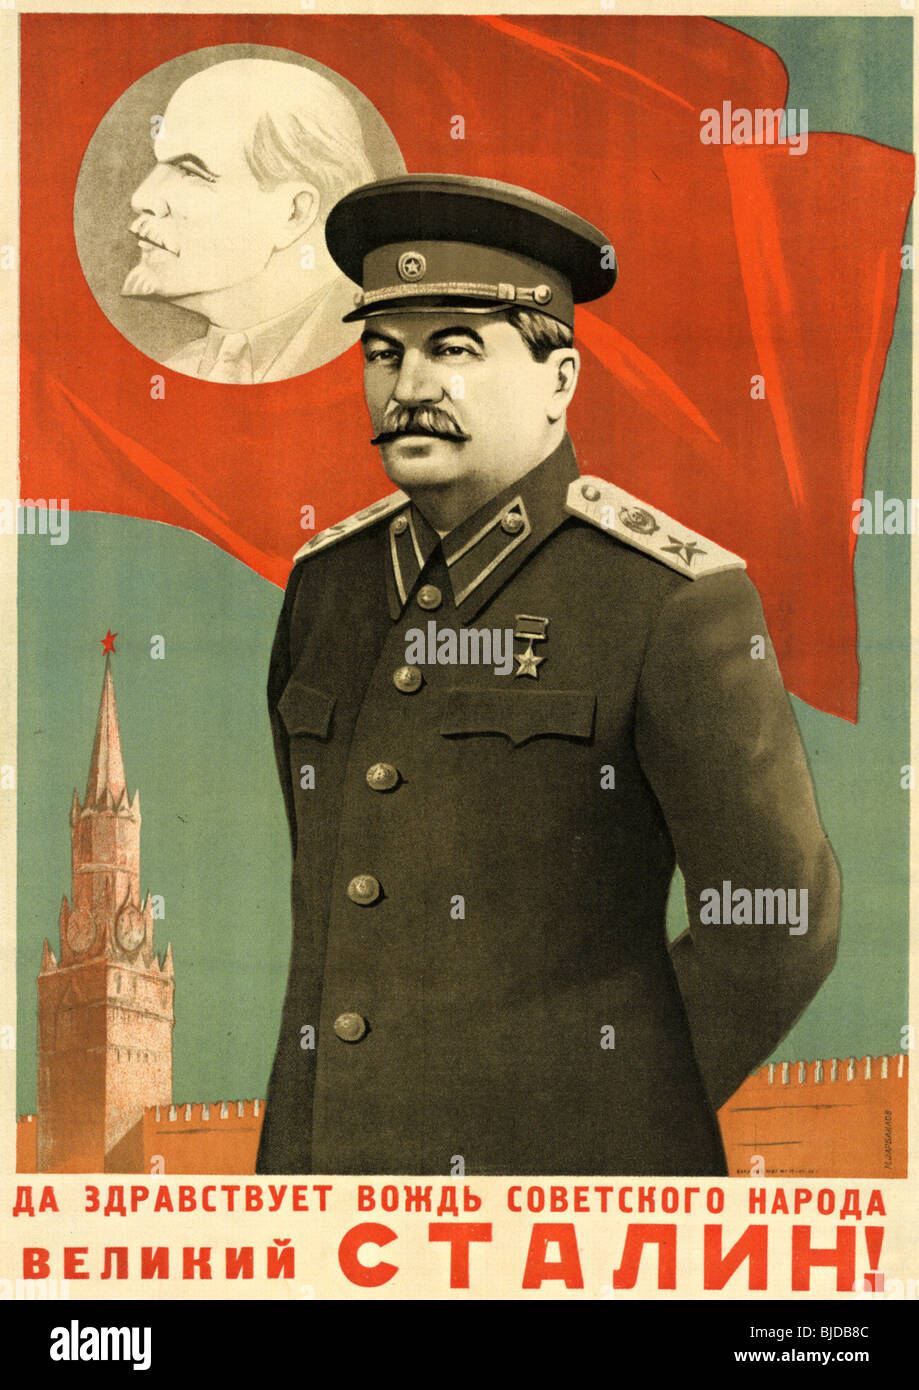 Stalin propaganda poster stock photos stalin propaganda poster joseph stalin 1947 poster proclaiming long live stalin leader of the soviet people thecheapjerseys Choice Image